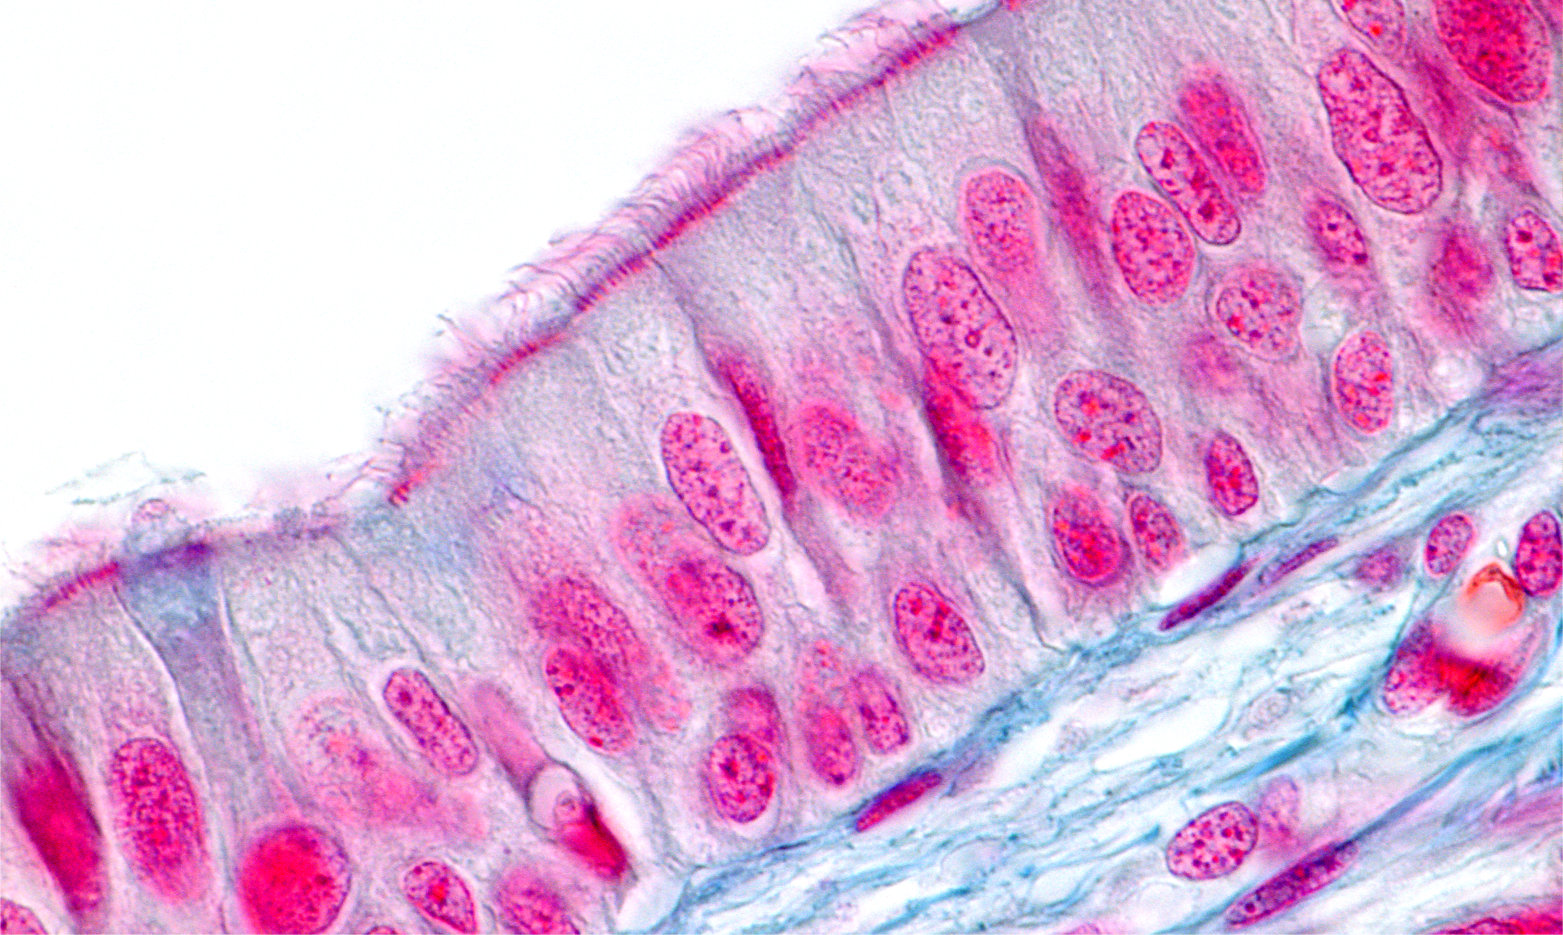 Respiratory epithelium